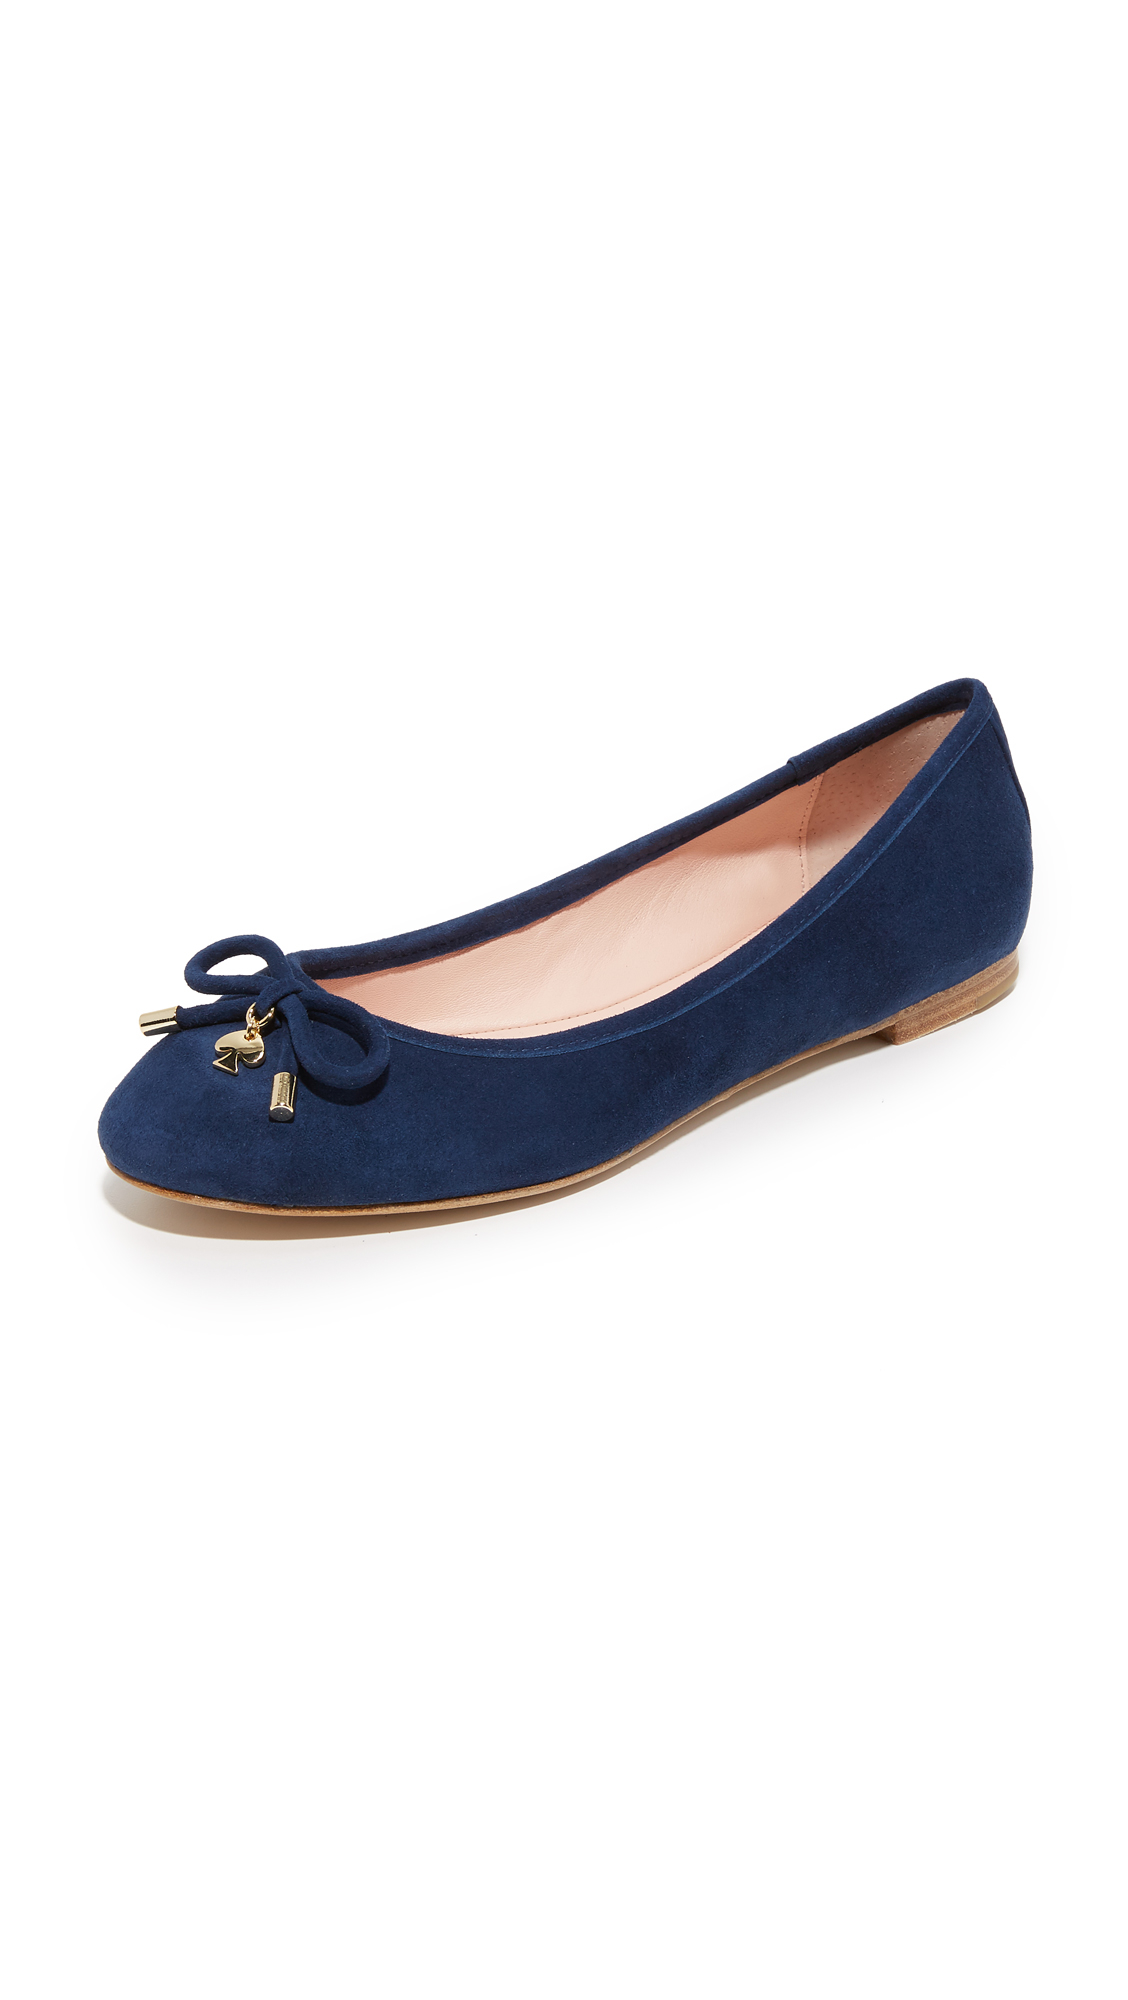 Kate spade new york willa flats in blue lyst for Kate spade new york flats